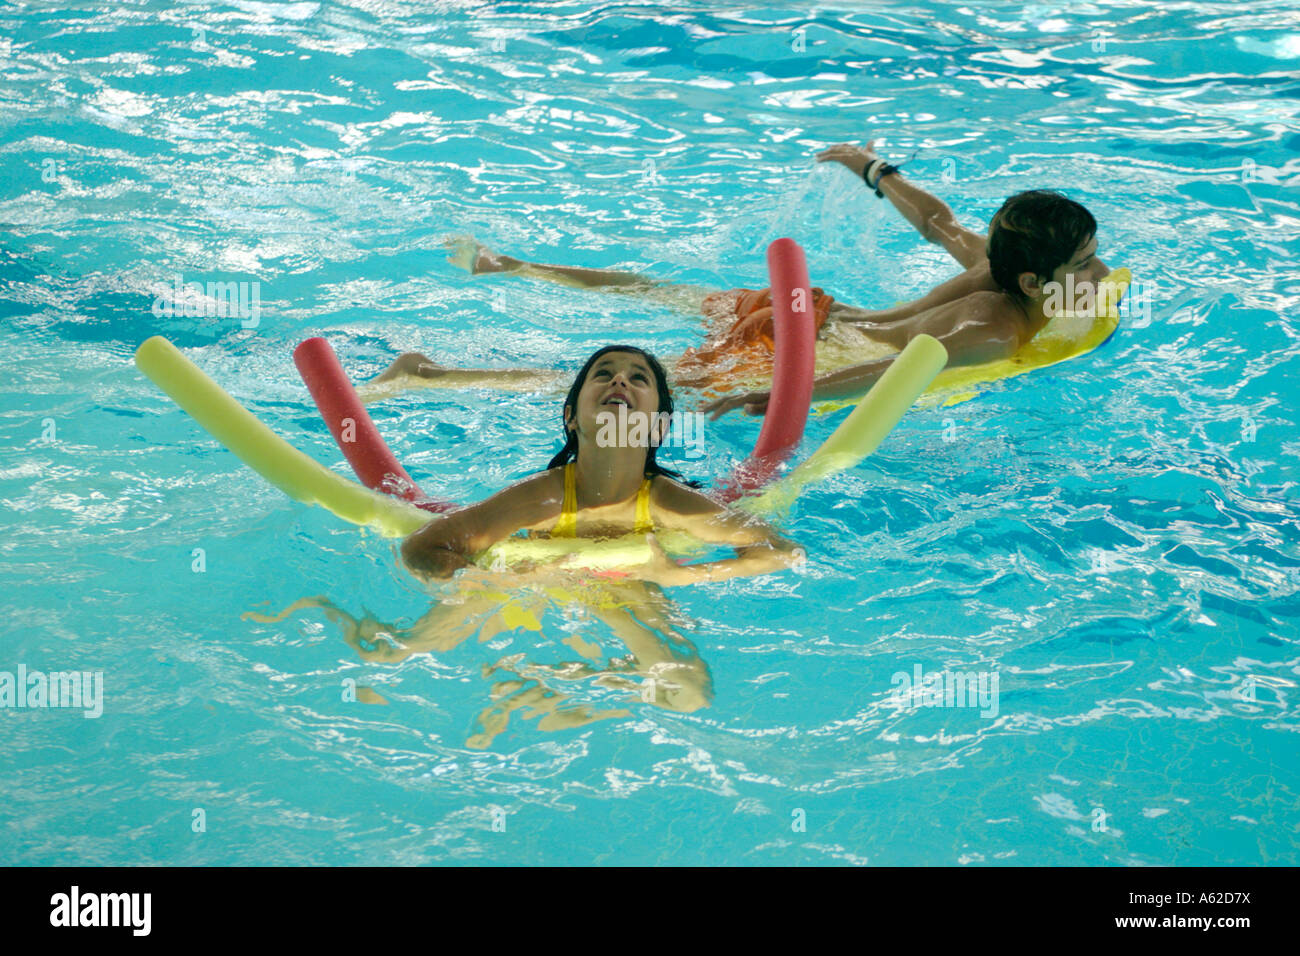 Interesting Kids Public Swimming Pool Photo Children With Floatation Devices At To Ideas